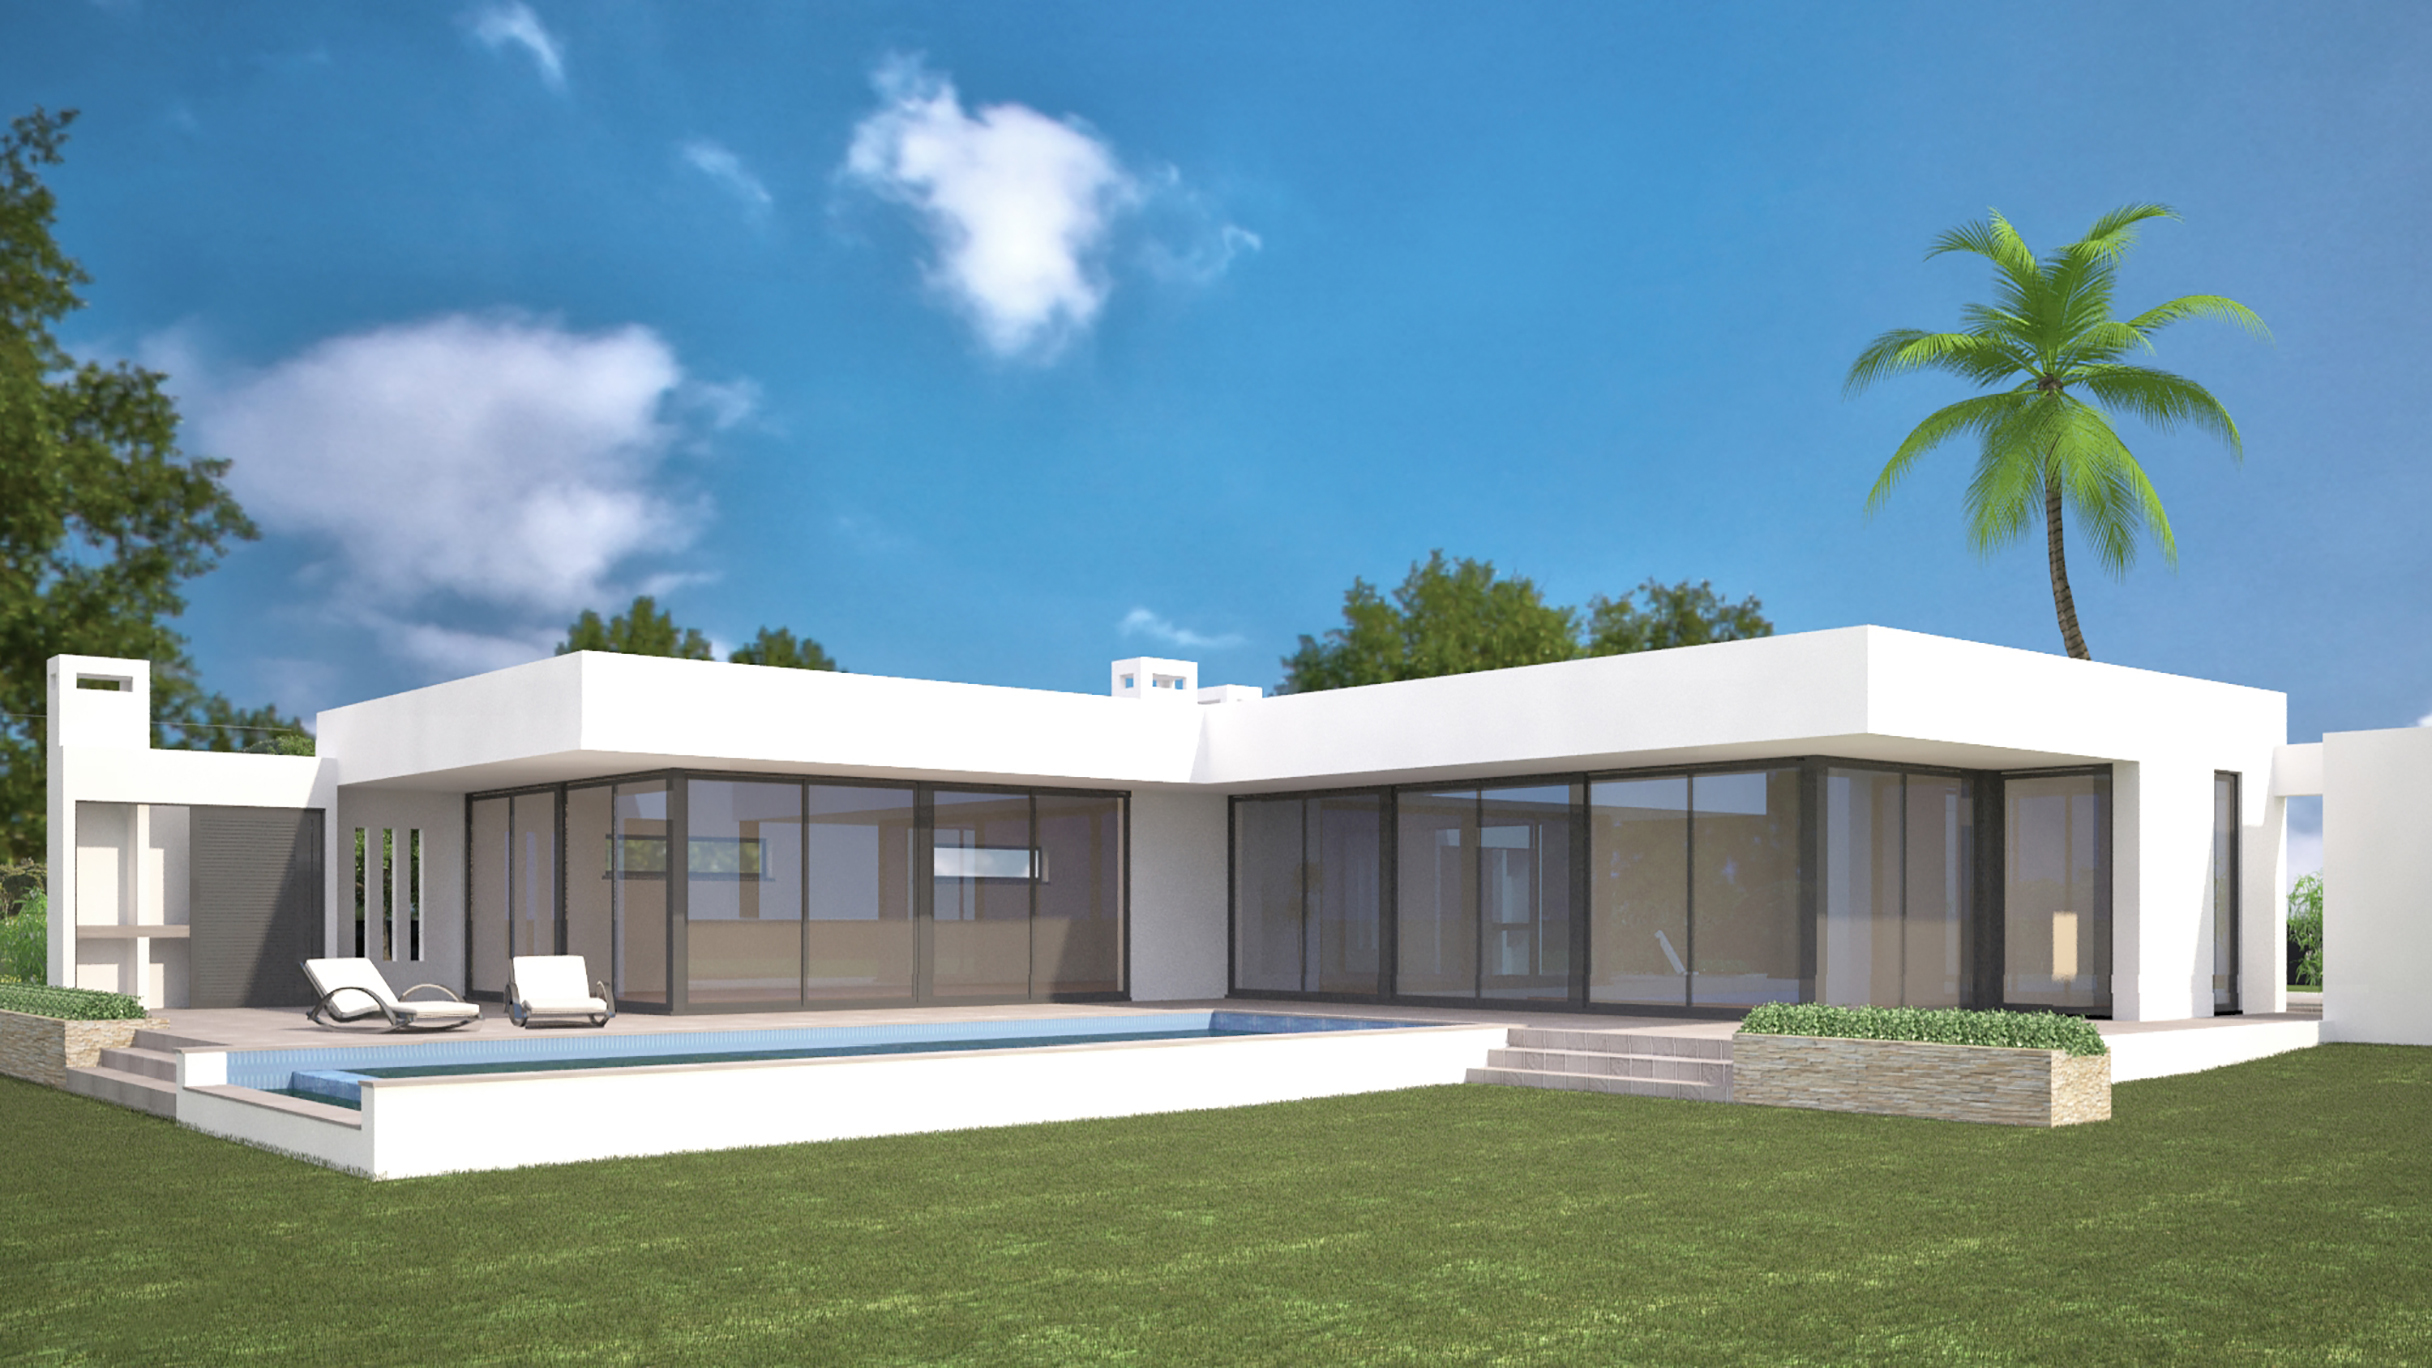 Off plan contemporary 3 bedroom villa with pool and sea views, near Lagos, West Algarve | LG990 This plot of 3162m² has a building permit for a contemporary 3 bedroom villa with a large pool and garage. It is one of 7 projects (plot and construction) in a very popular residential area near Lagos. Located in a prime position with sea and panoramic views and with 2 minutes of golf and Meia Praia.